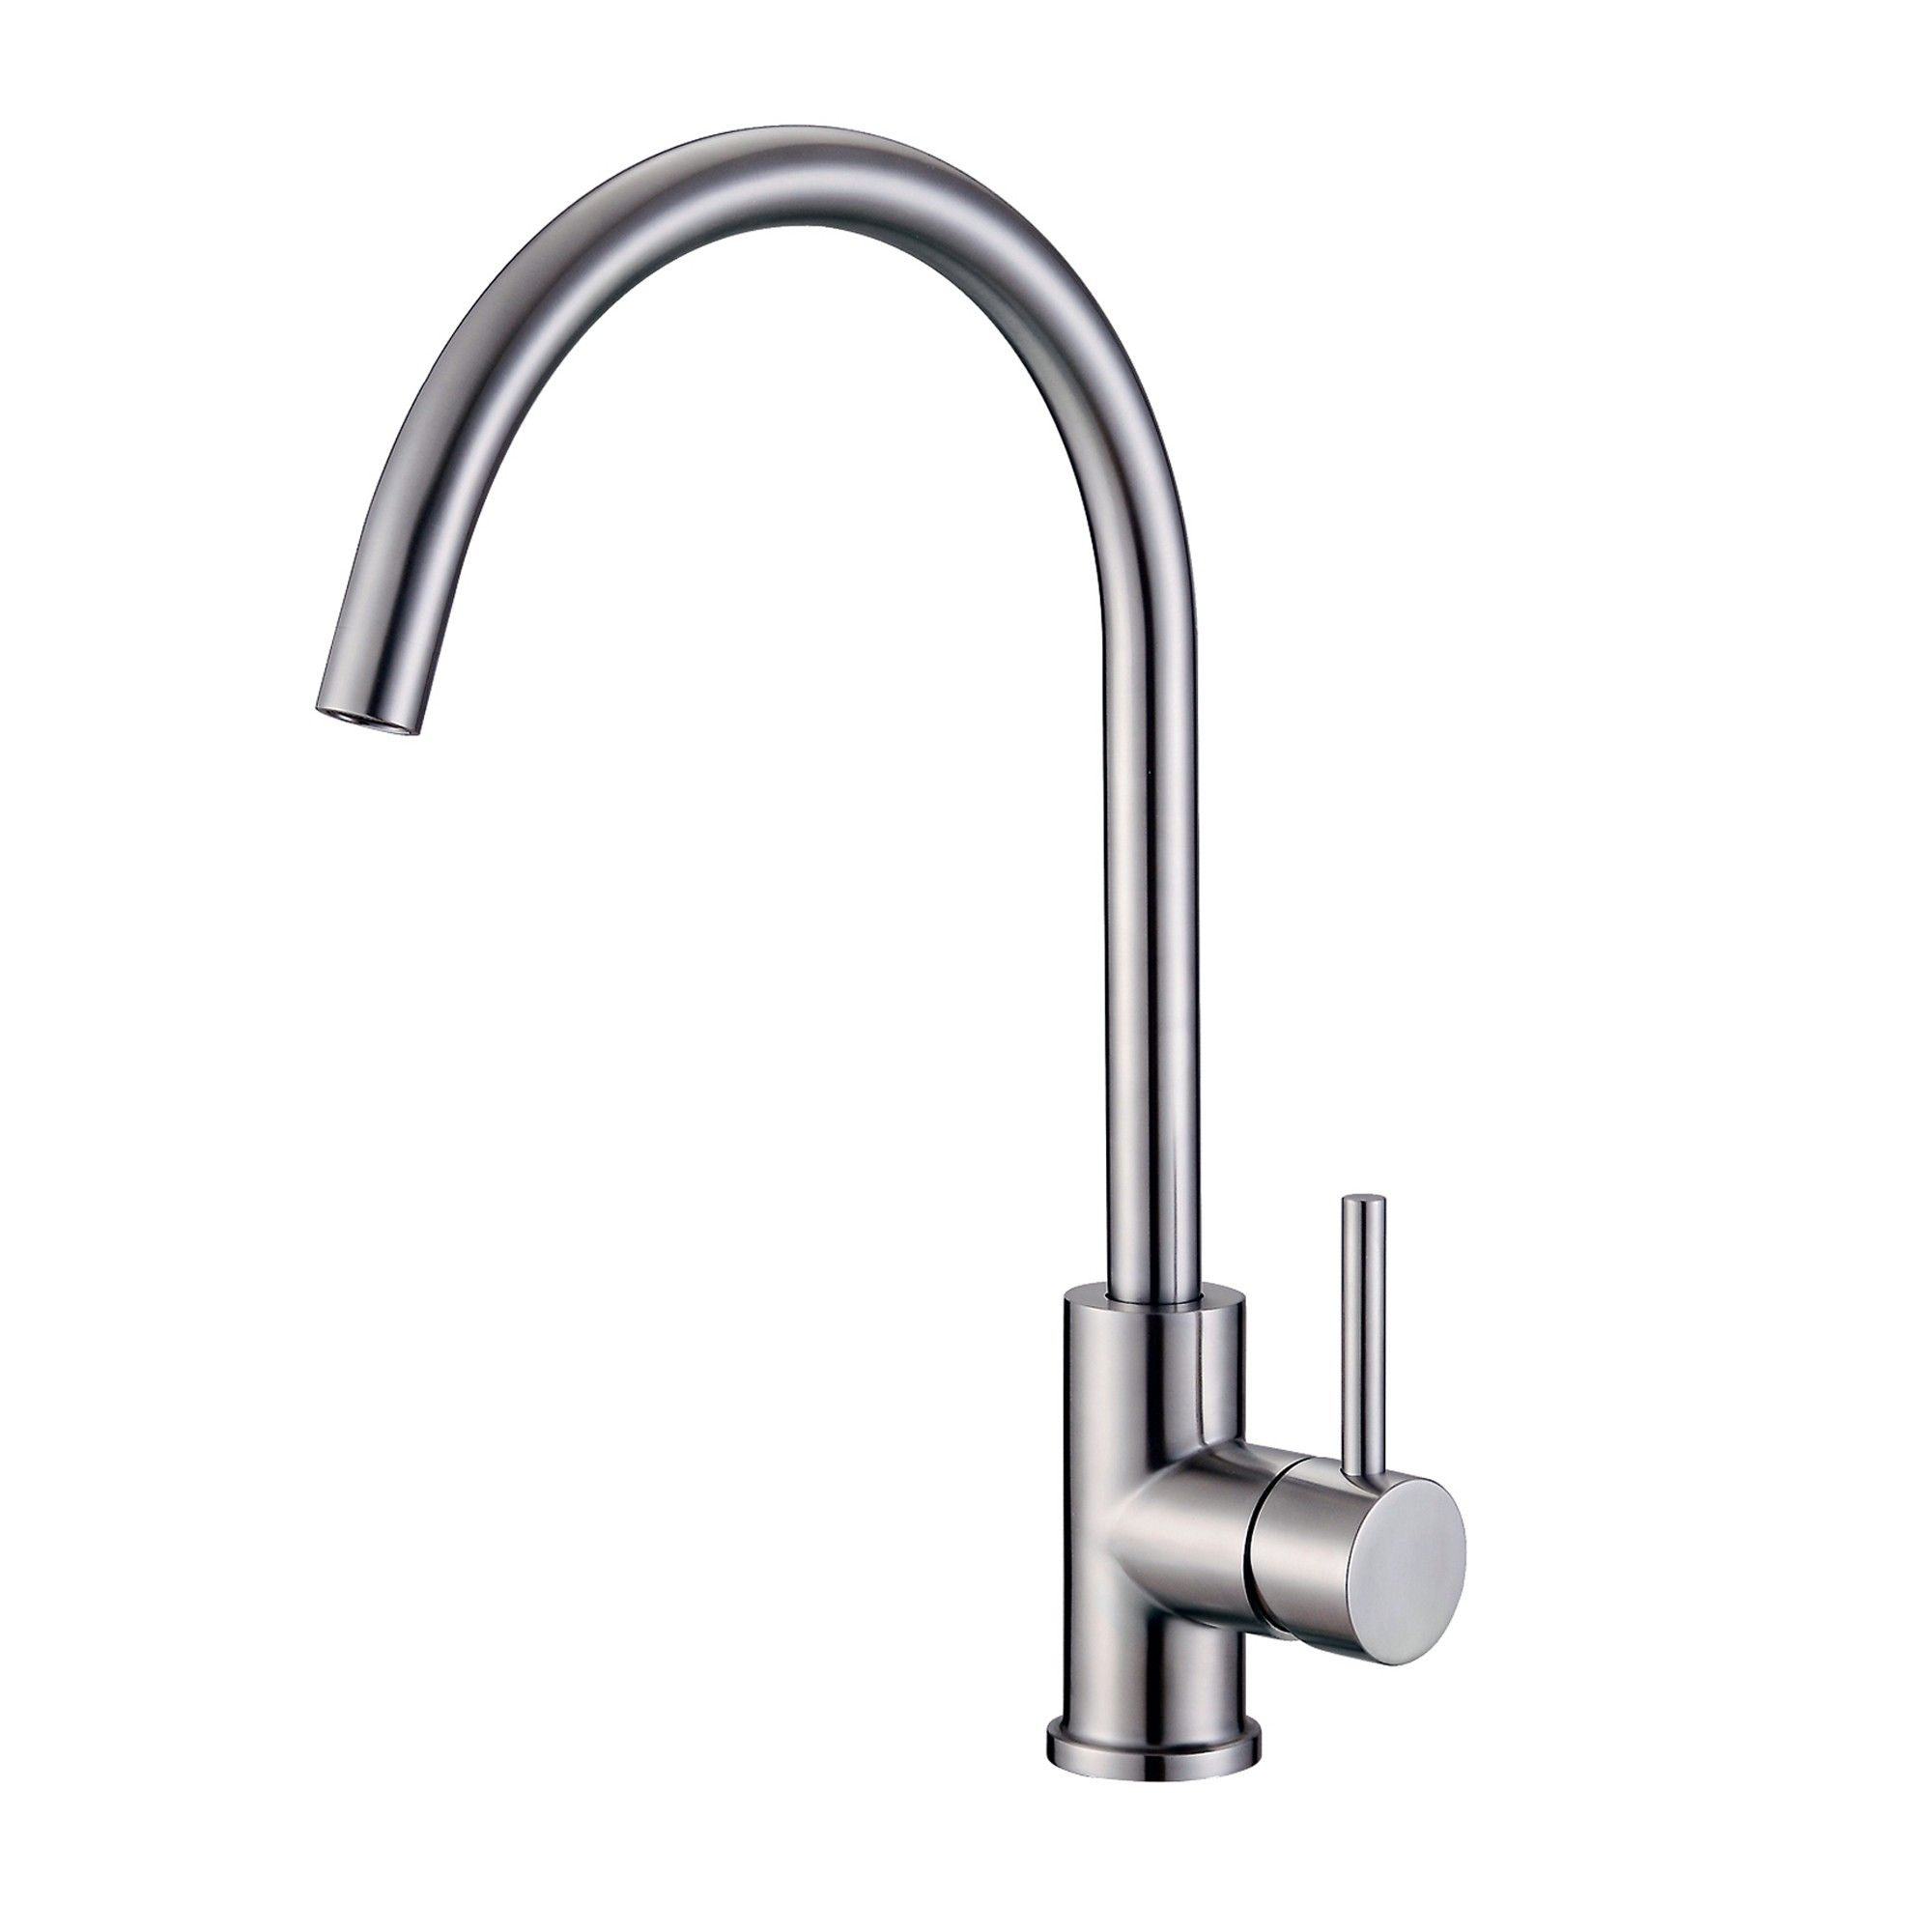 12 Kitchen Faucet Ideas For An Instant Style Update Kitchen Faucet Matte Black Faucet Black Faucet